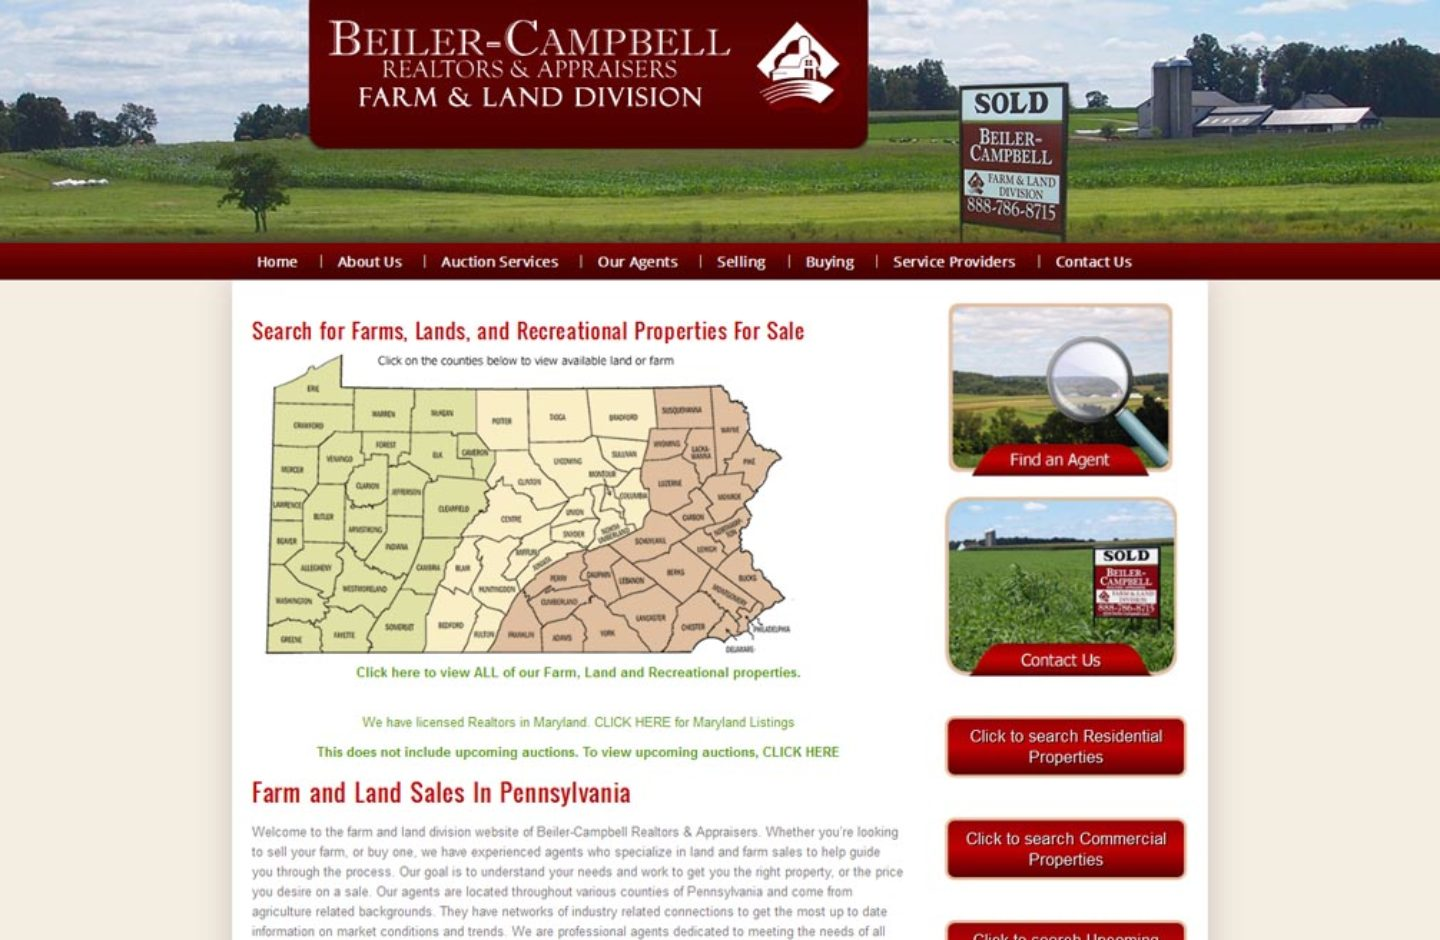 Beiler-Campbell Farms